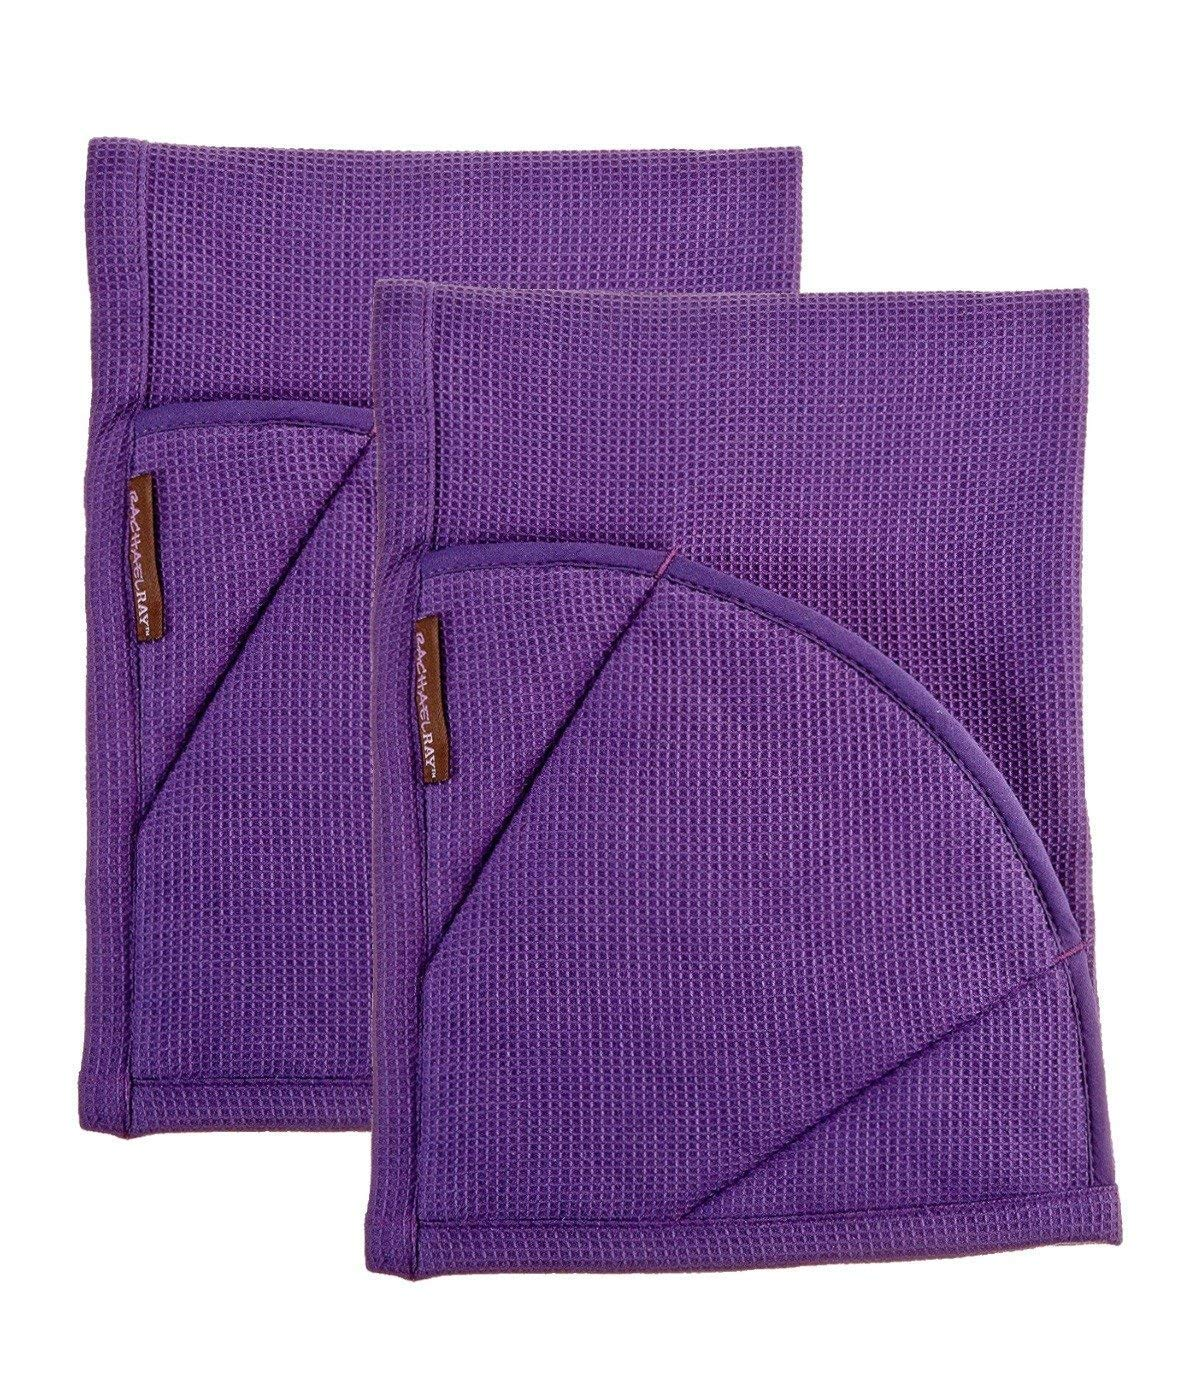 Rachael Ray Multifunctional 2-in-1 Moppine, Ultra Absorbent Kitchen Towel & Heat Resistant Pot Holder, Lavender- 2pk